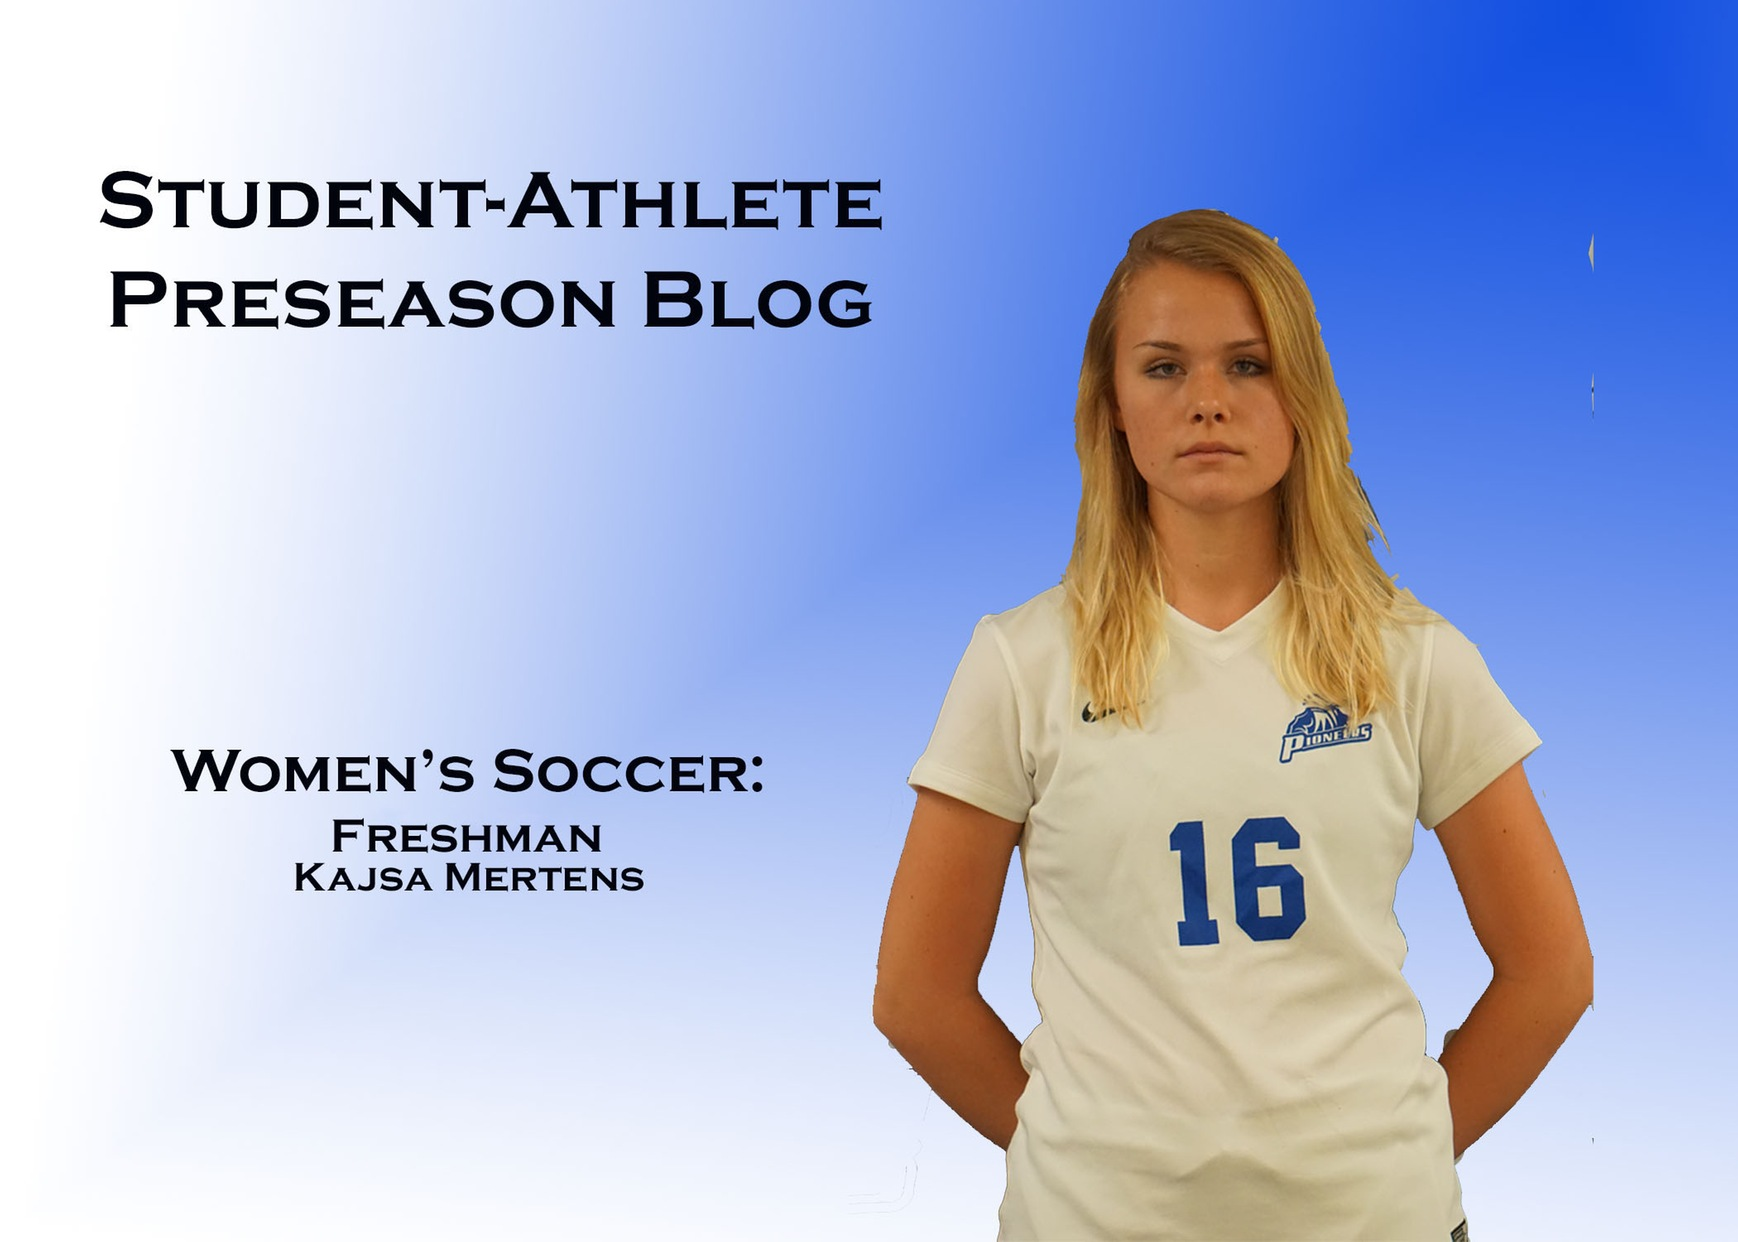 Day Three: Student-Athlete Blog